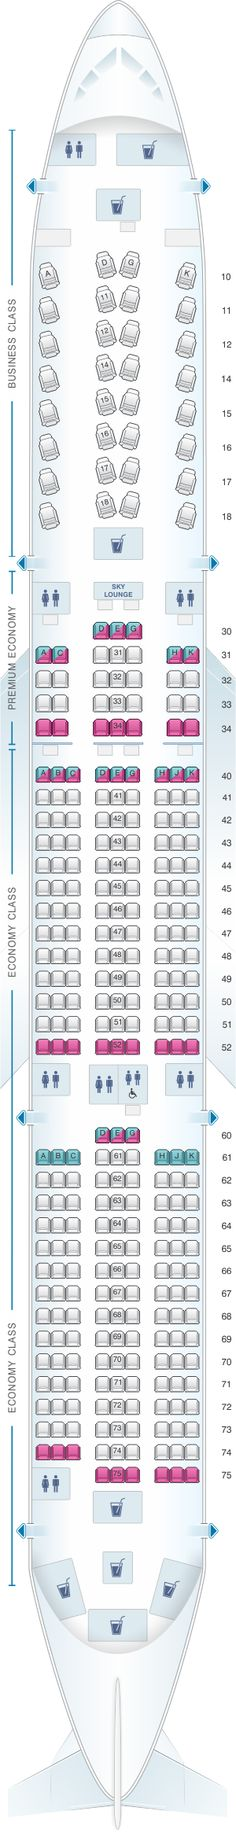 Seat Map China Airlines Airbus A350 900